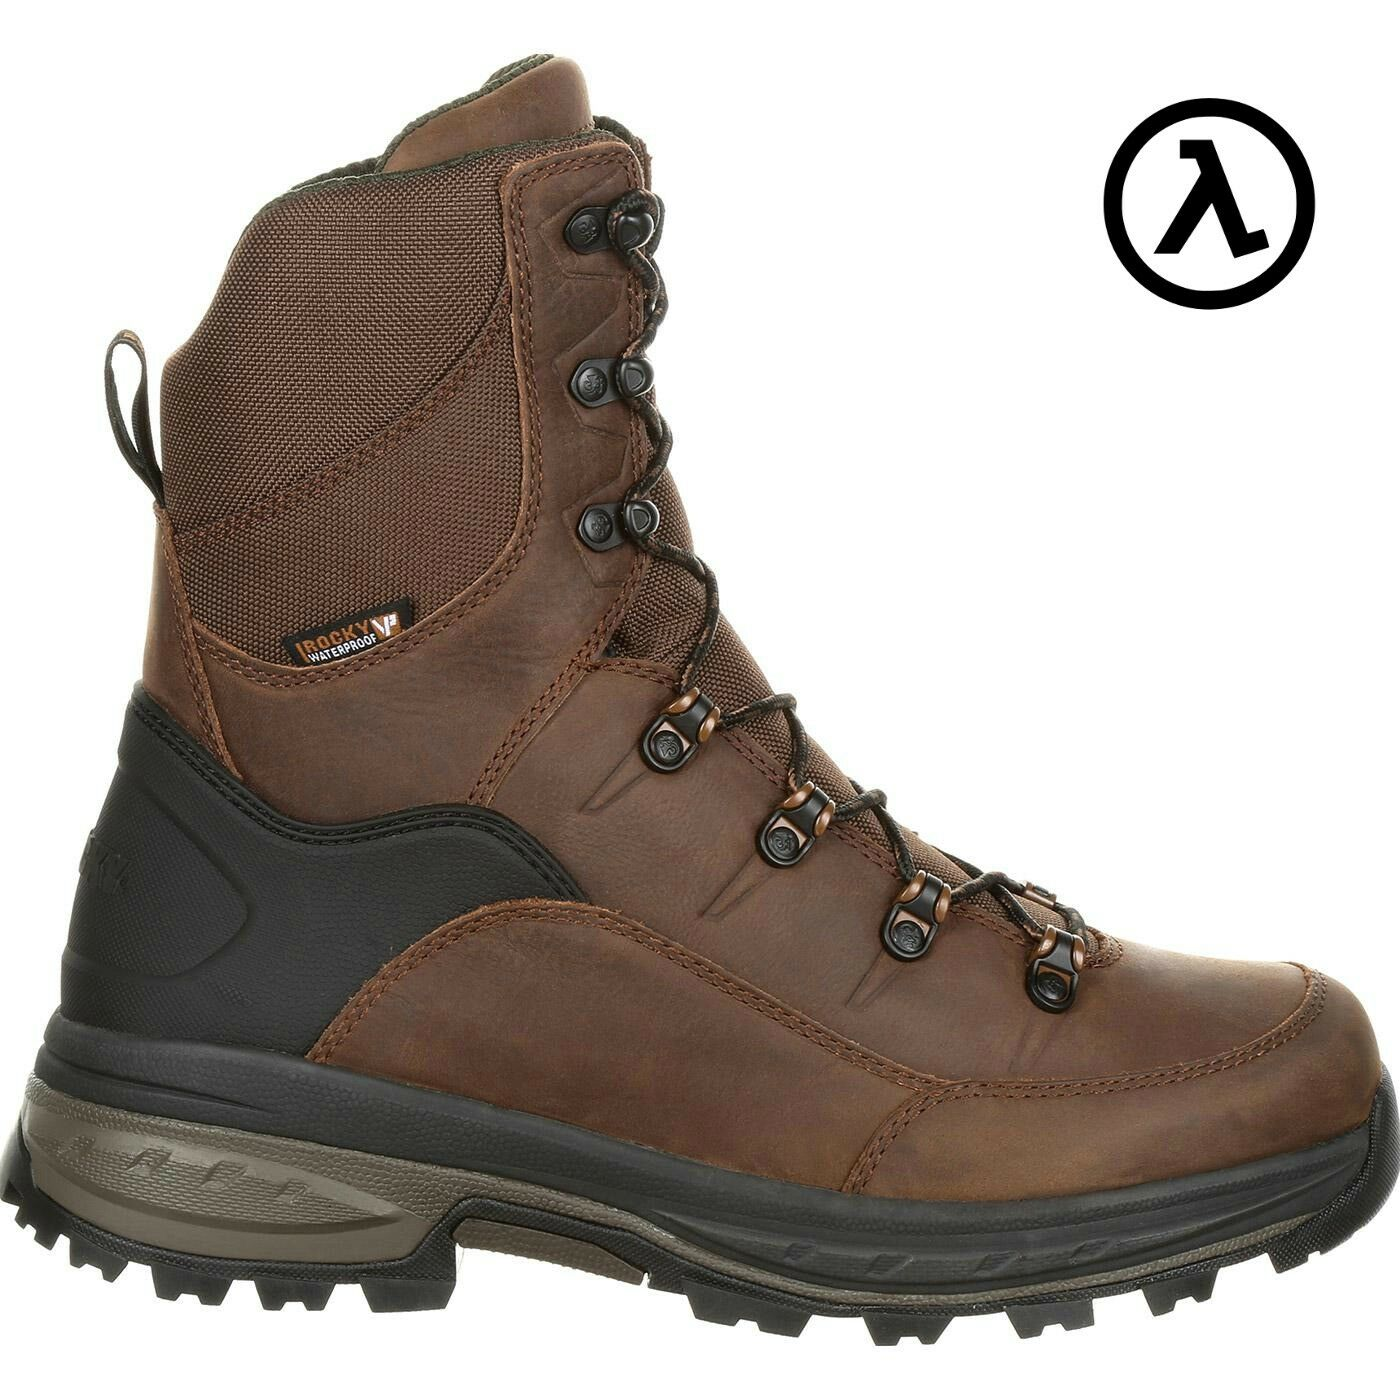 ROCKY GRIZZLY WATERPROOF 200G INSULATED OUTDOOR BOOTS RKS0365  ALL SIZES